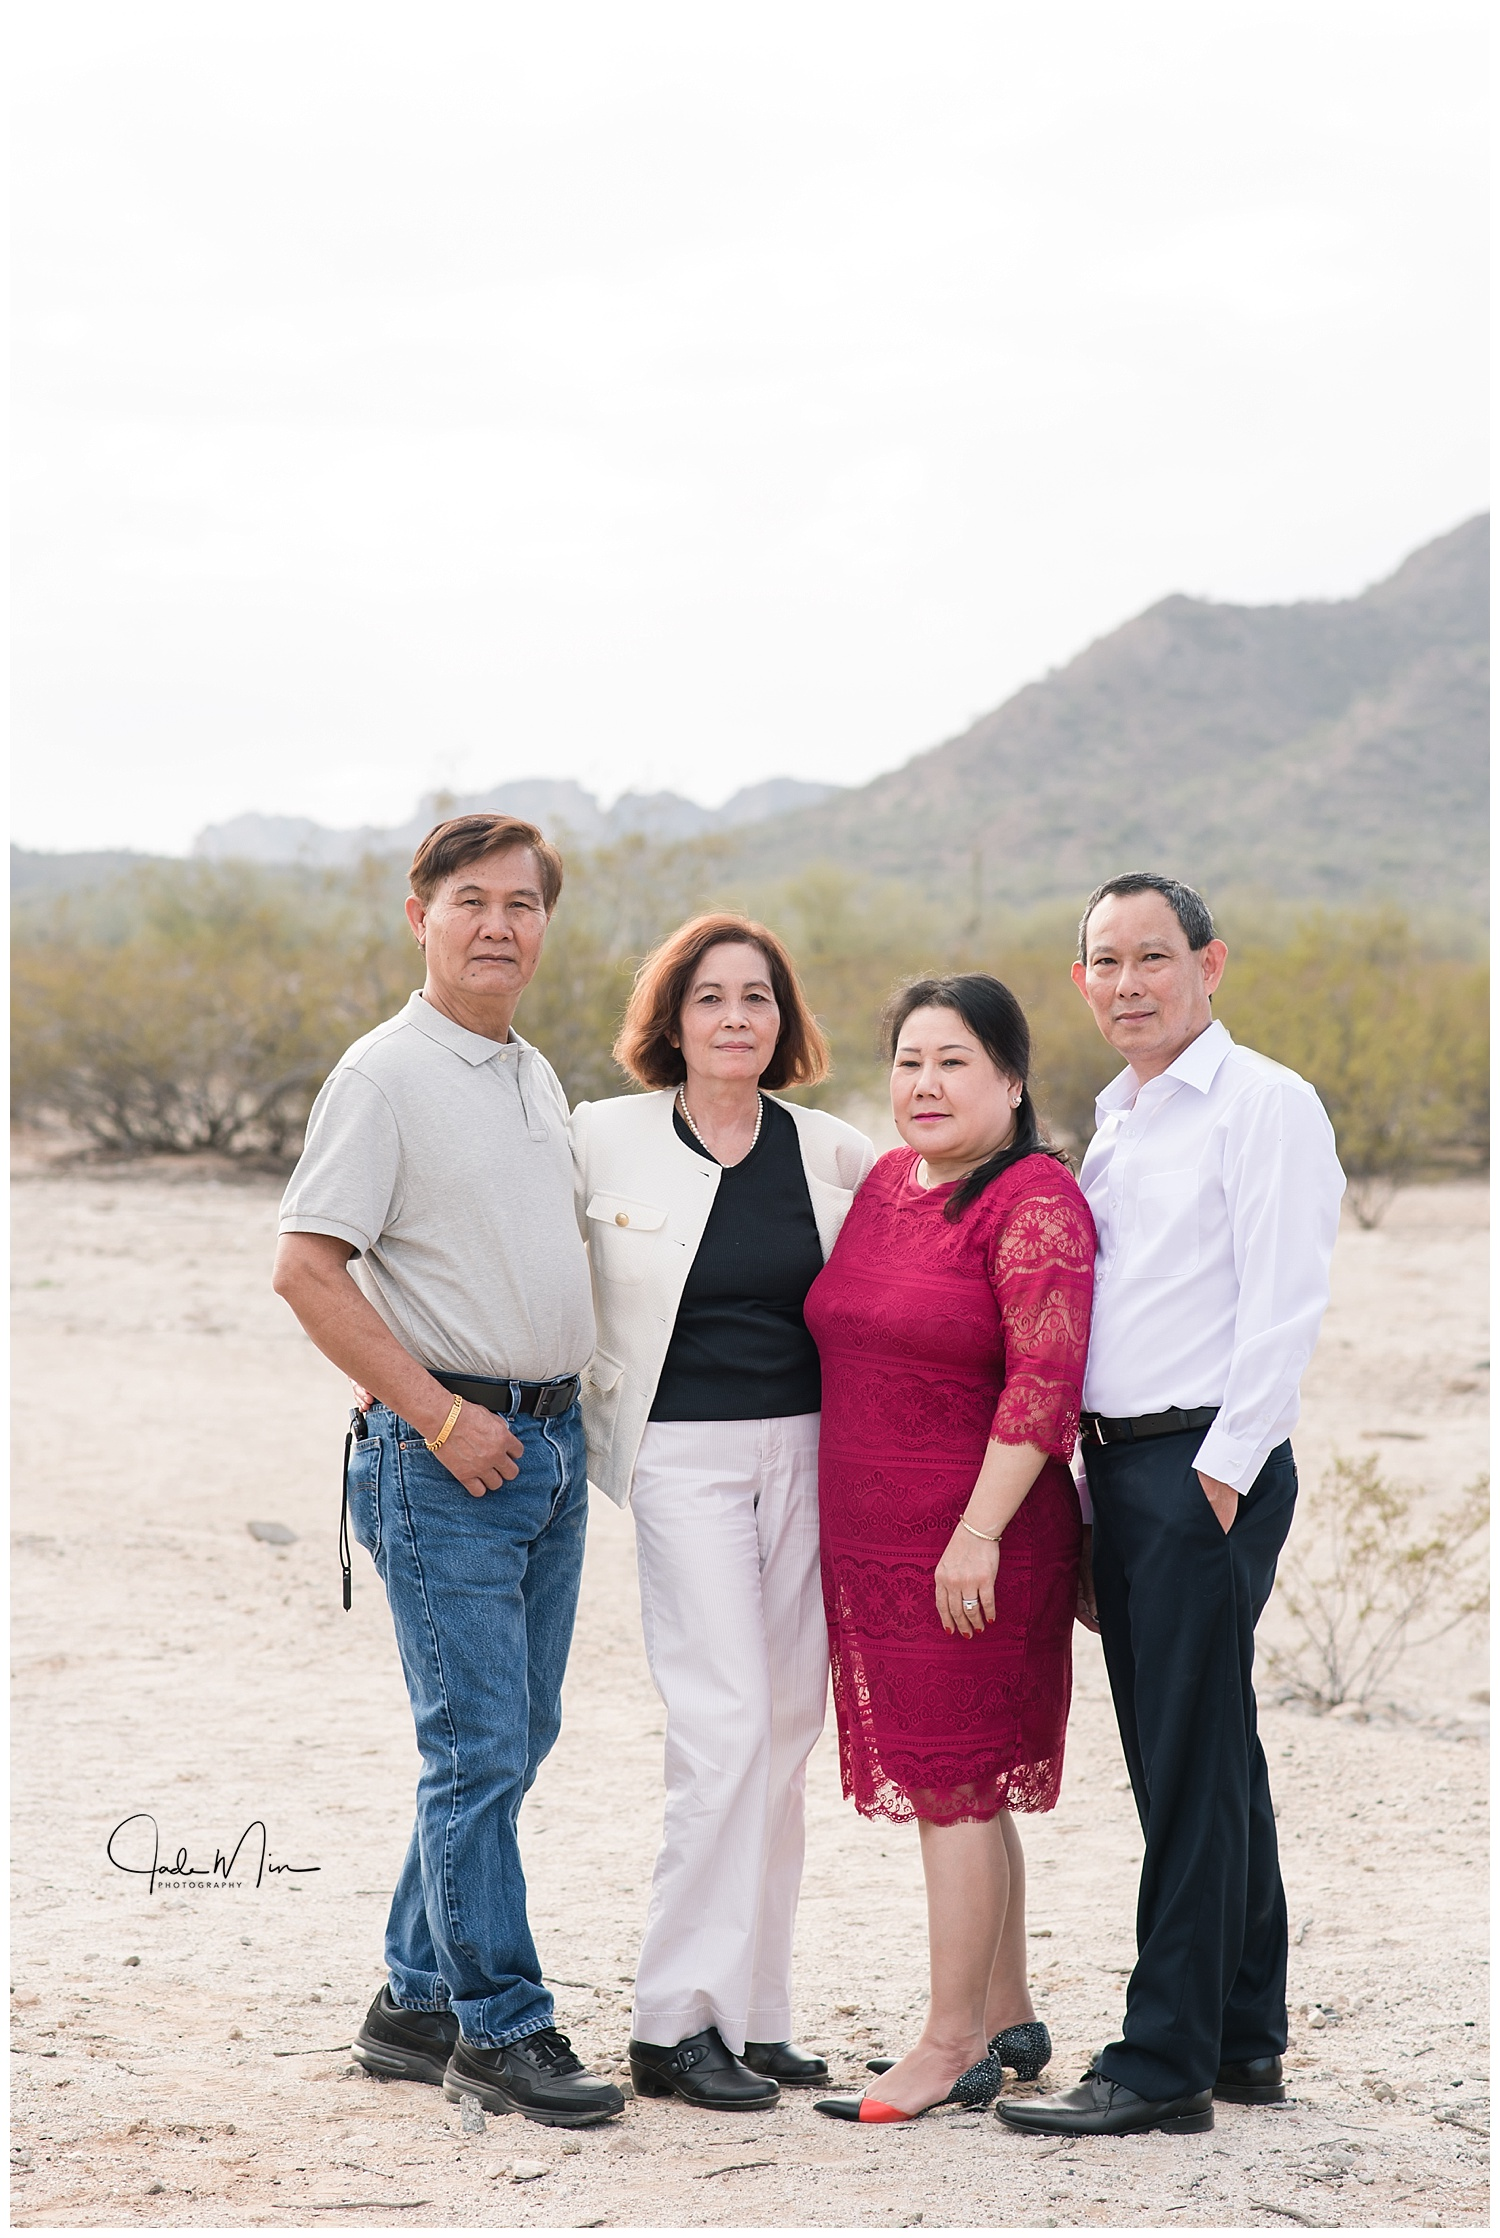 Phanpraseuth & McLawson Families, Photo Session at San Tan Mountain Regional Park in Queen Creek, Arizona.